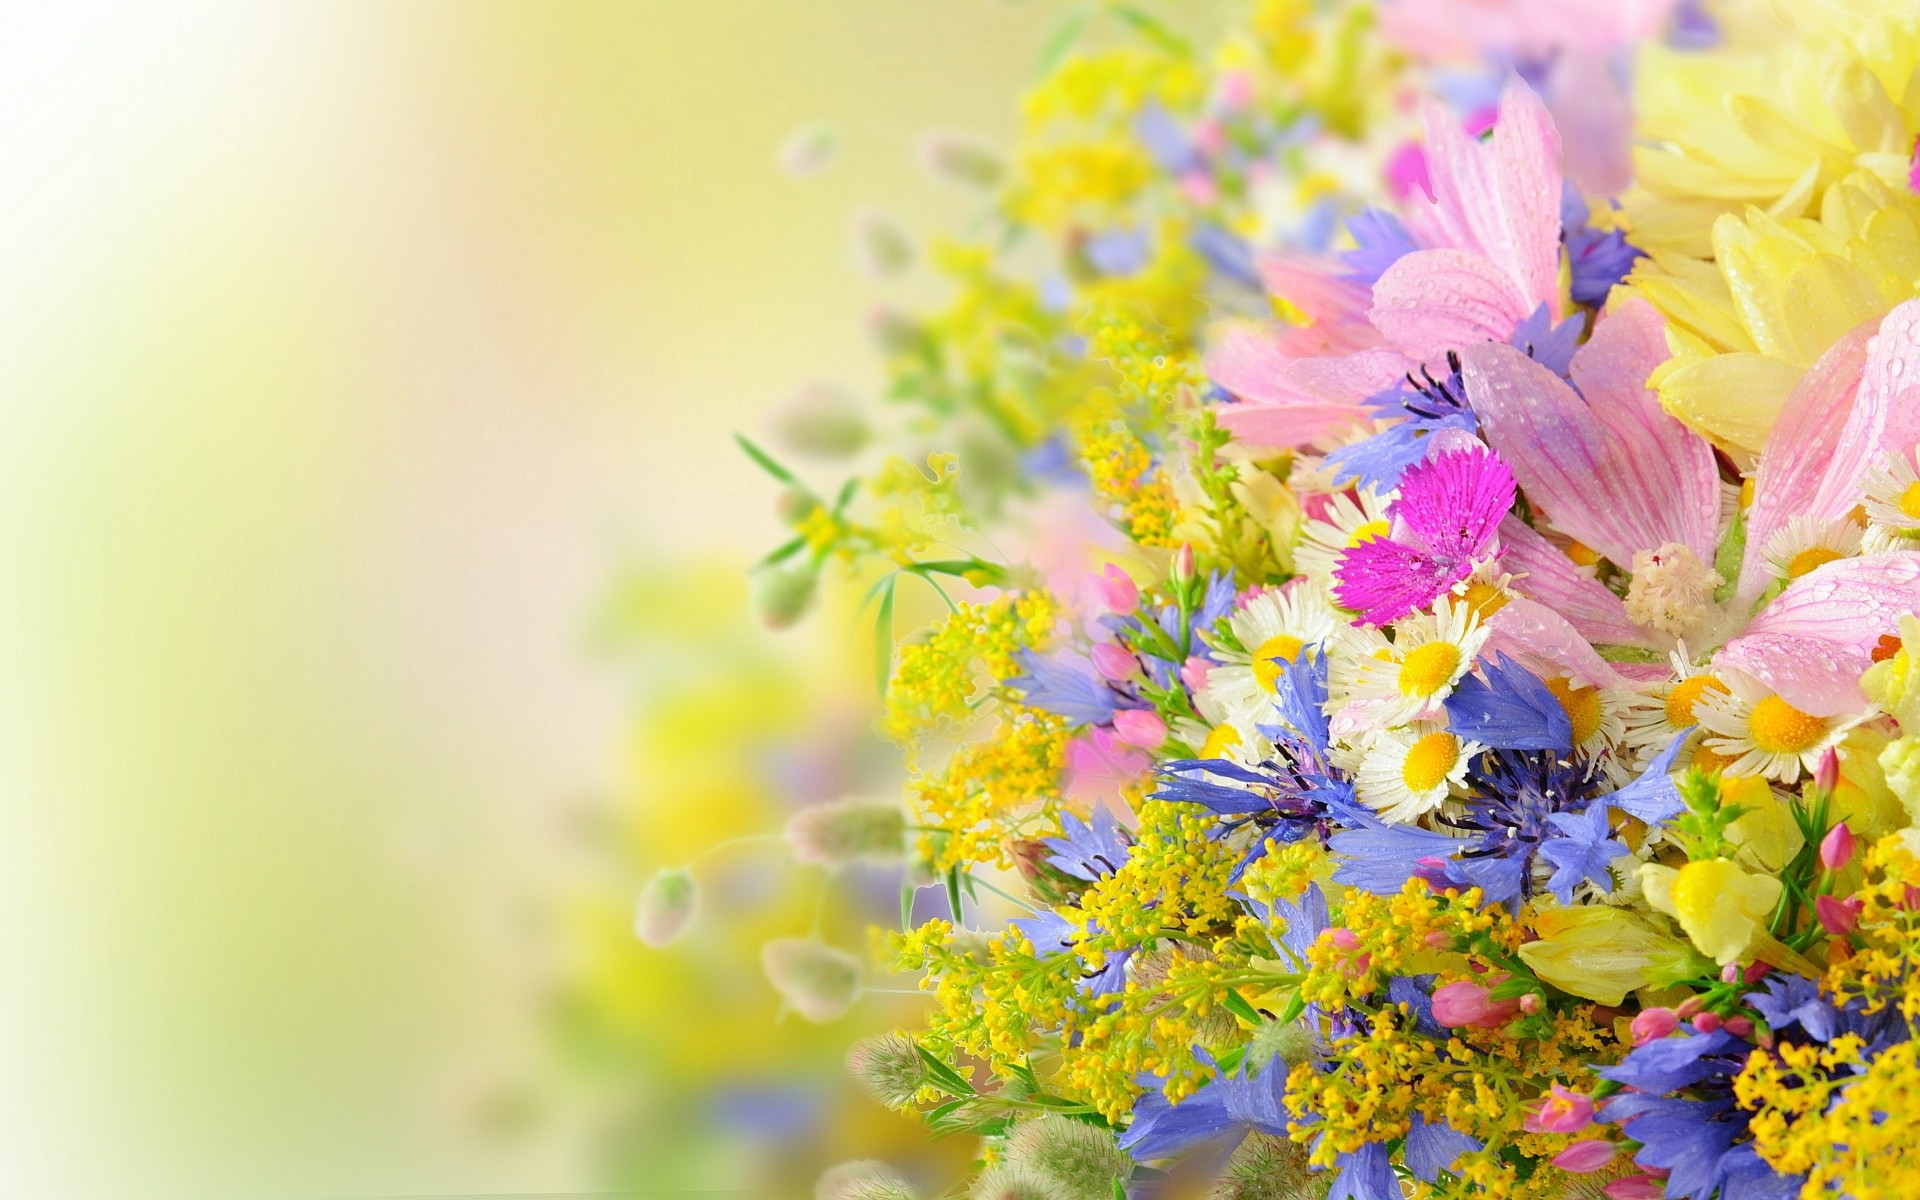 Res: 1920x1200, Summer Flowers Background